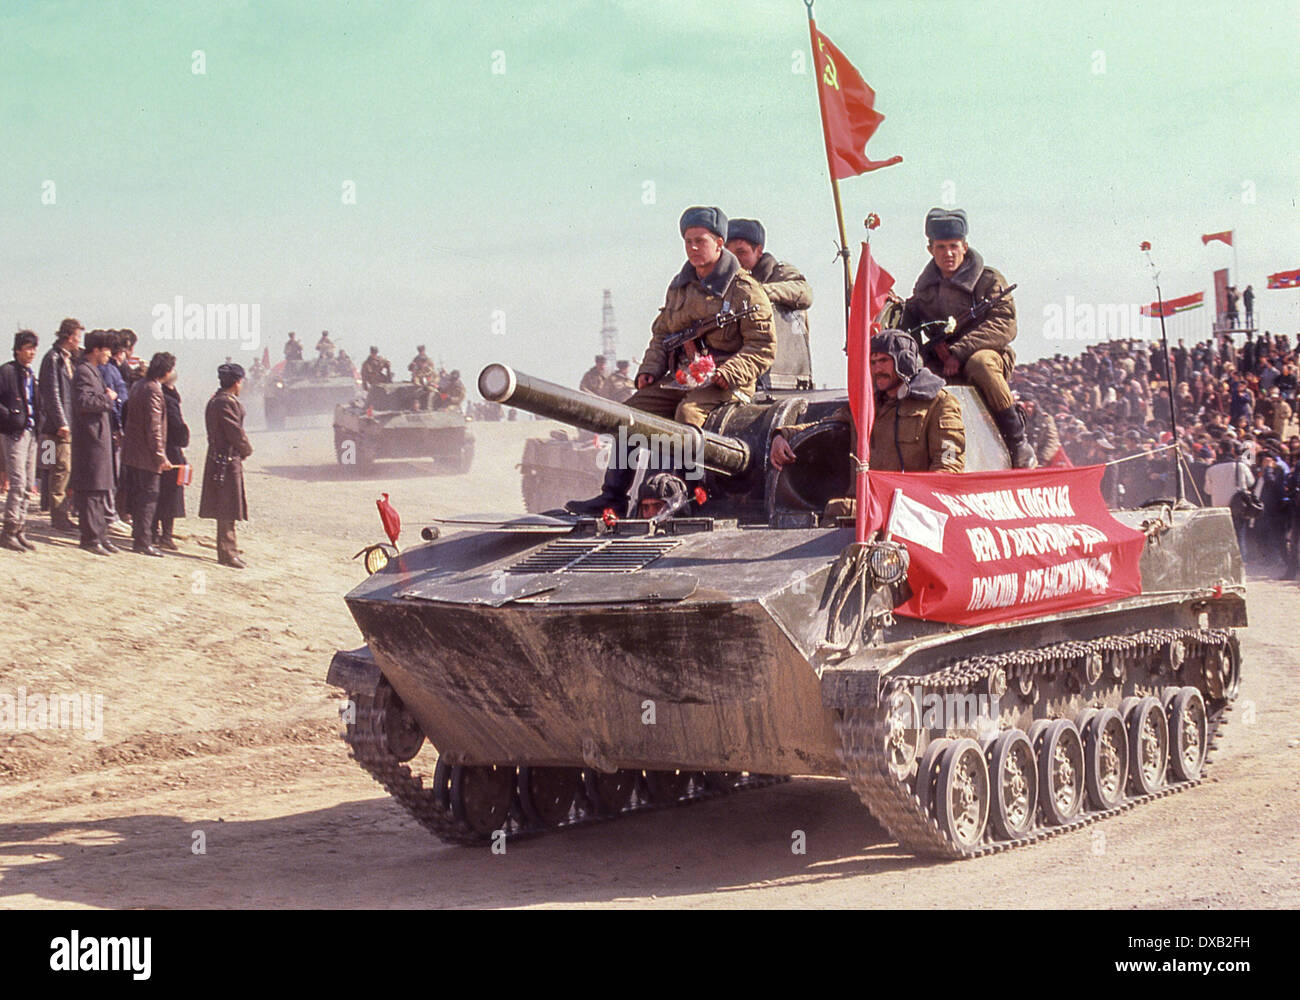 Soviet Afghanistan war - Page 6 Feb-17-1989-termez-uzbekistan-ru-a-light-tank-with-soviet-troops-of-DXB2FH